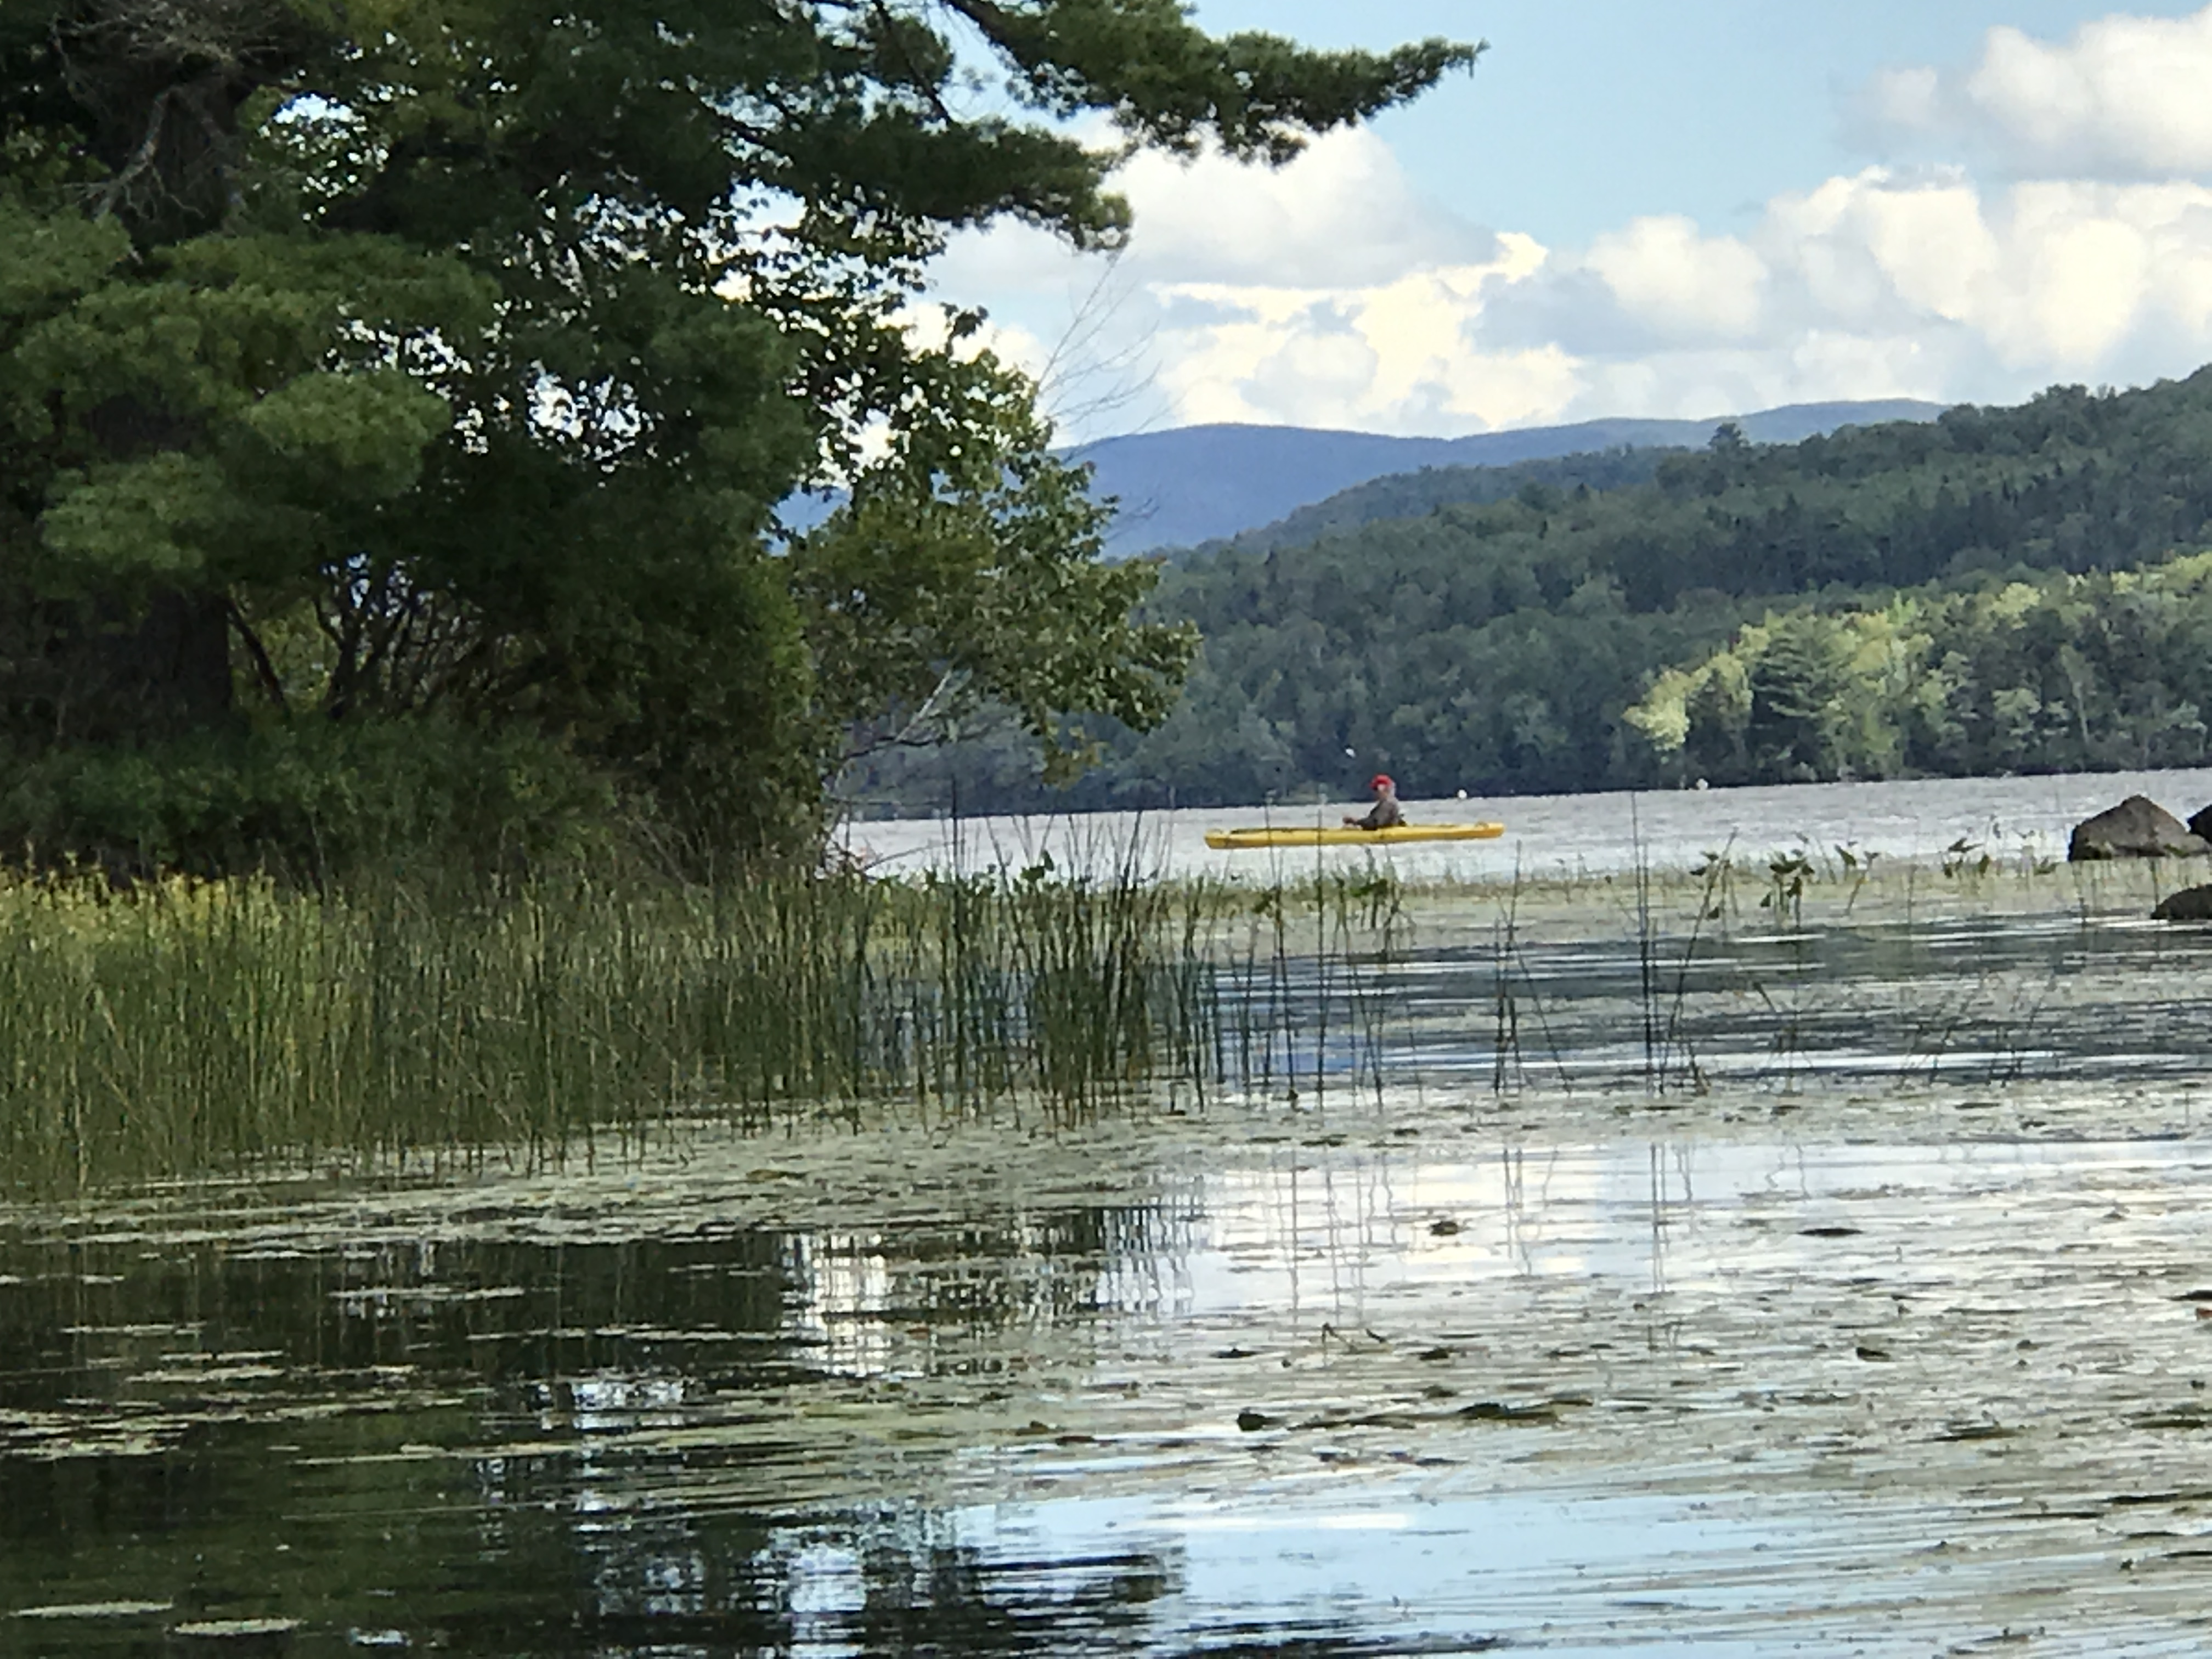 Exploring secluded lakes, see loons